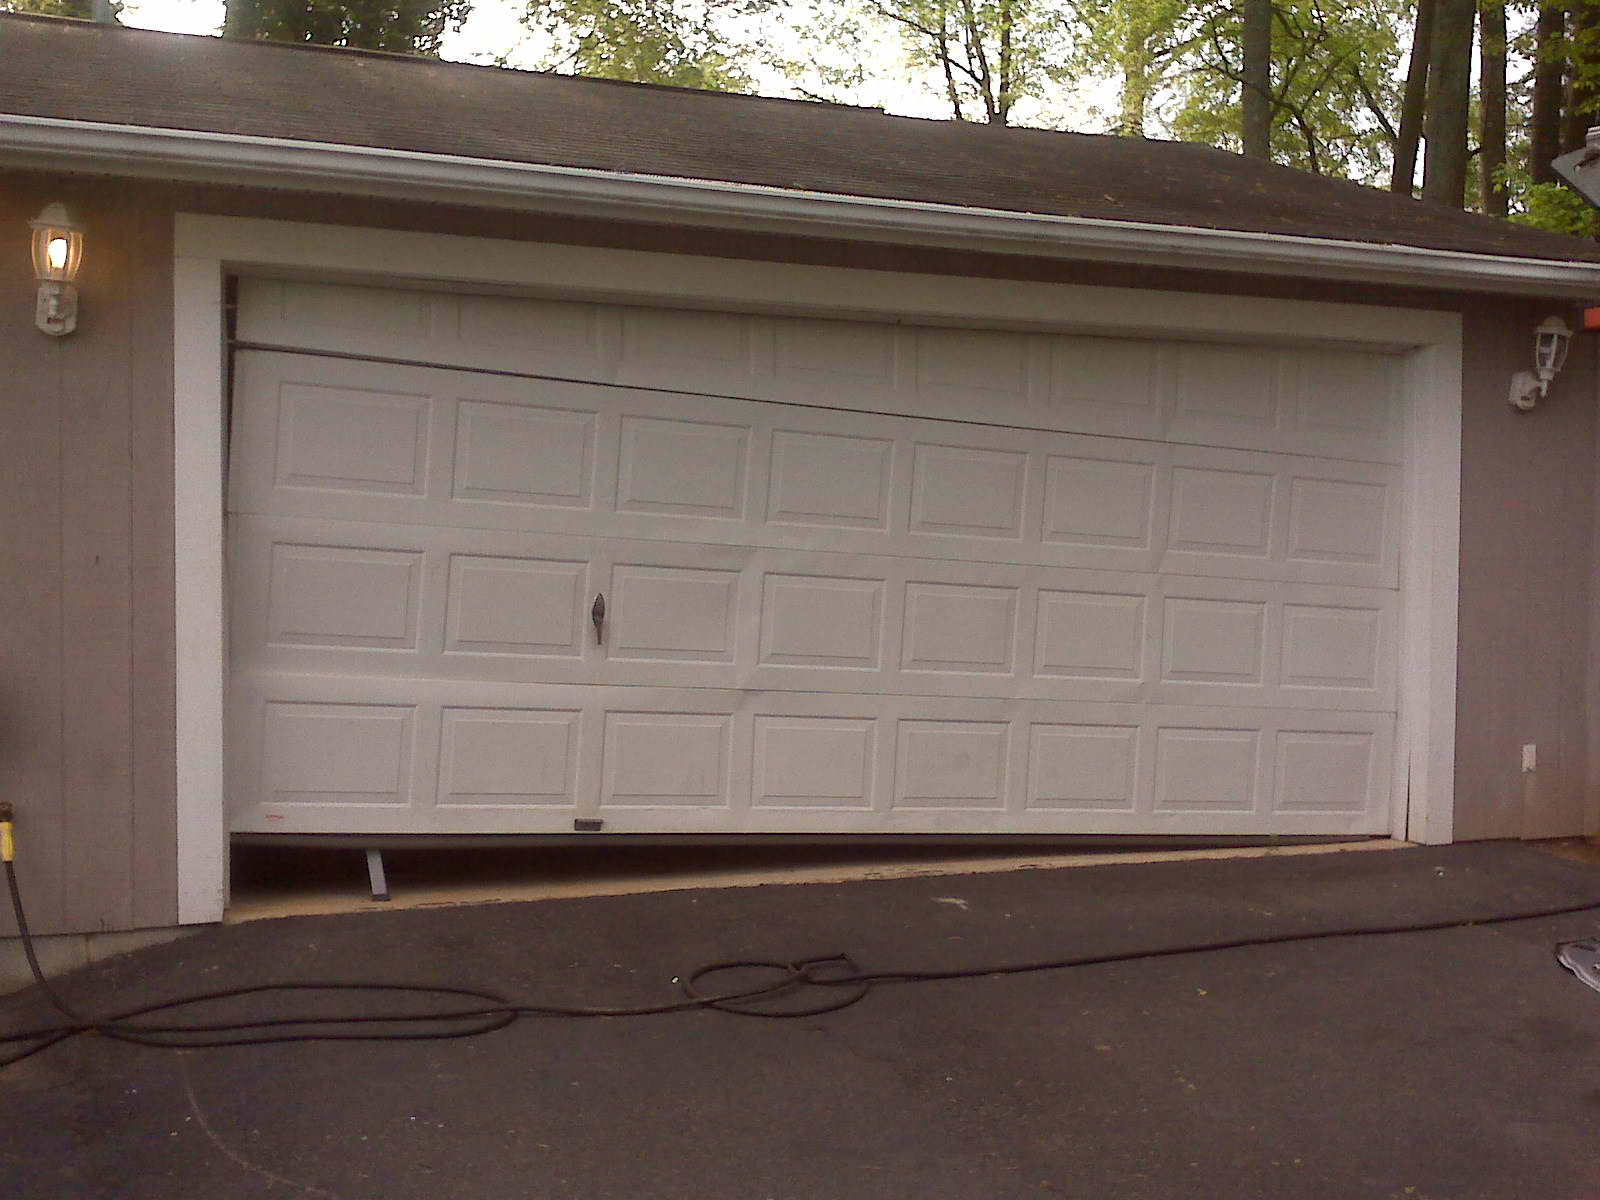 1200 #967335 Garage Doors Made Into One Garage Door After A Plus Garage Doors wallpaper Doors And Garage Doors 37151600